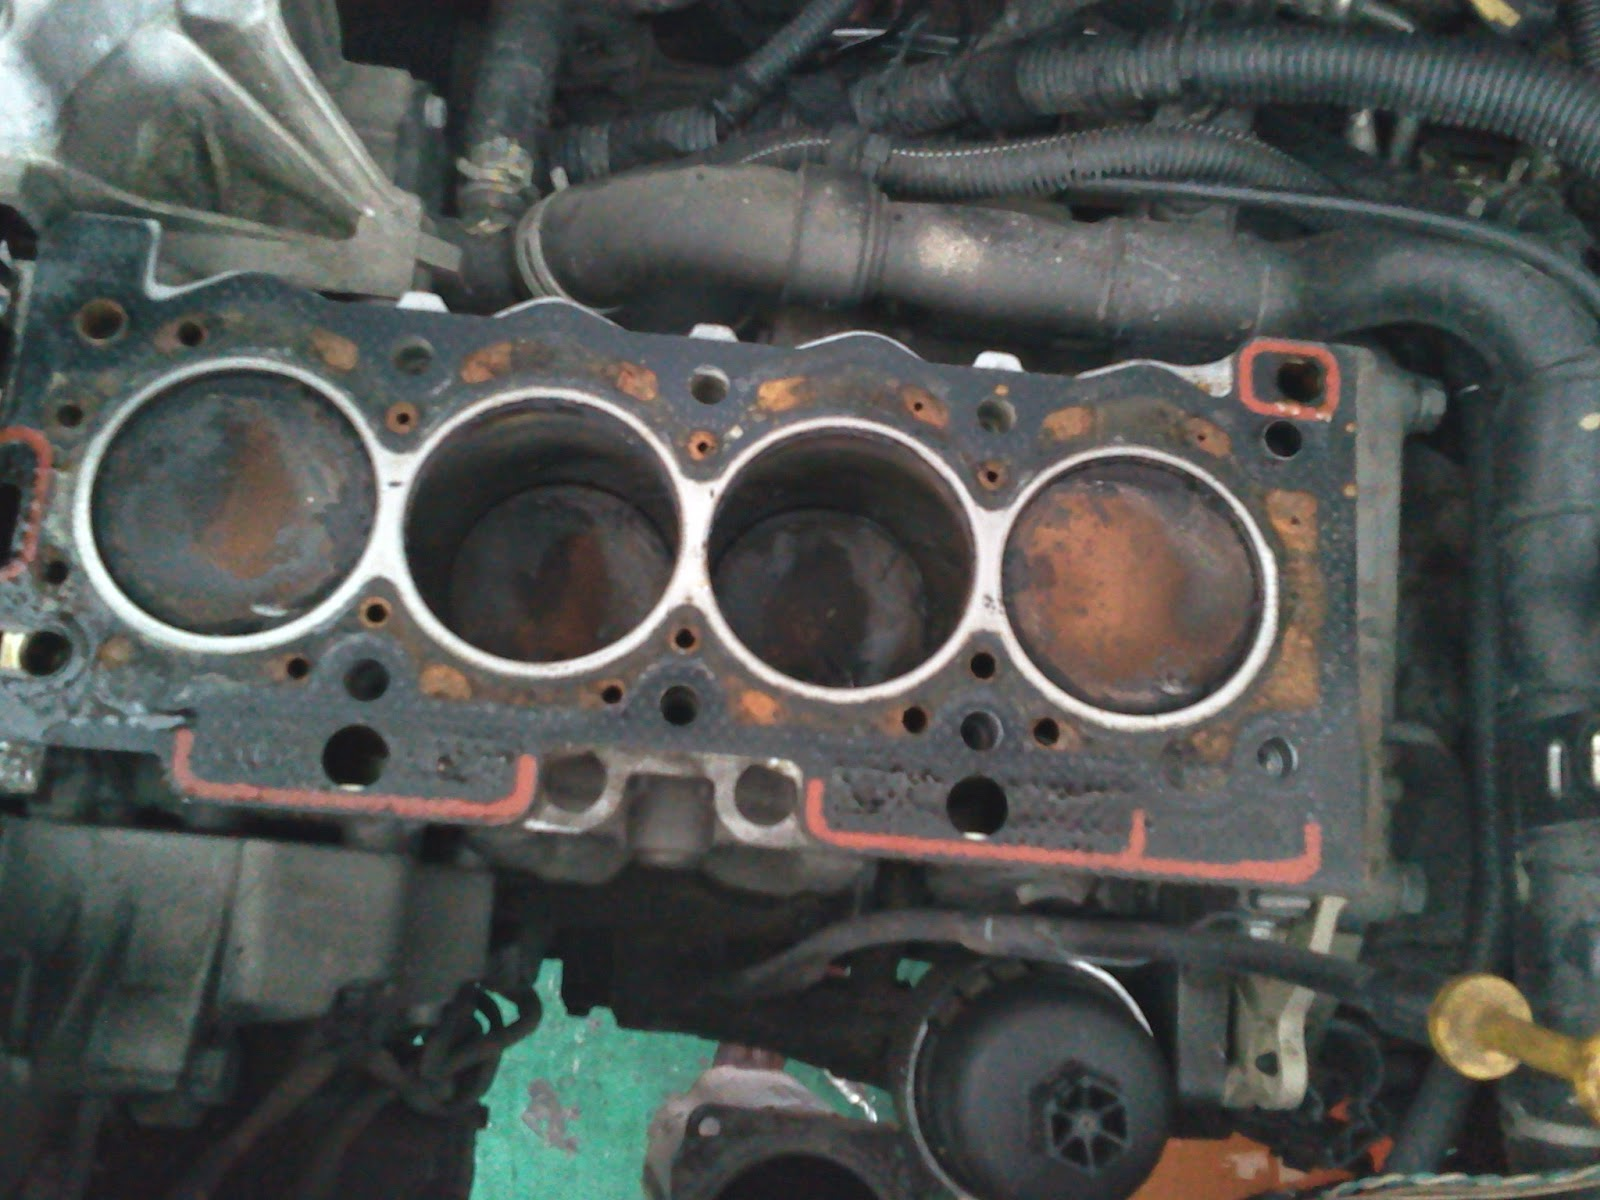 medium resolution of this is another car which had its timing belt slipped too mine were double the